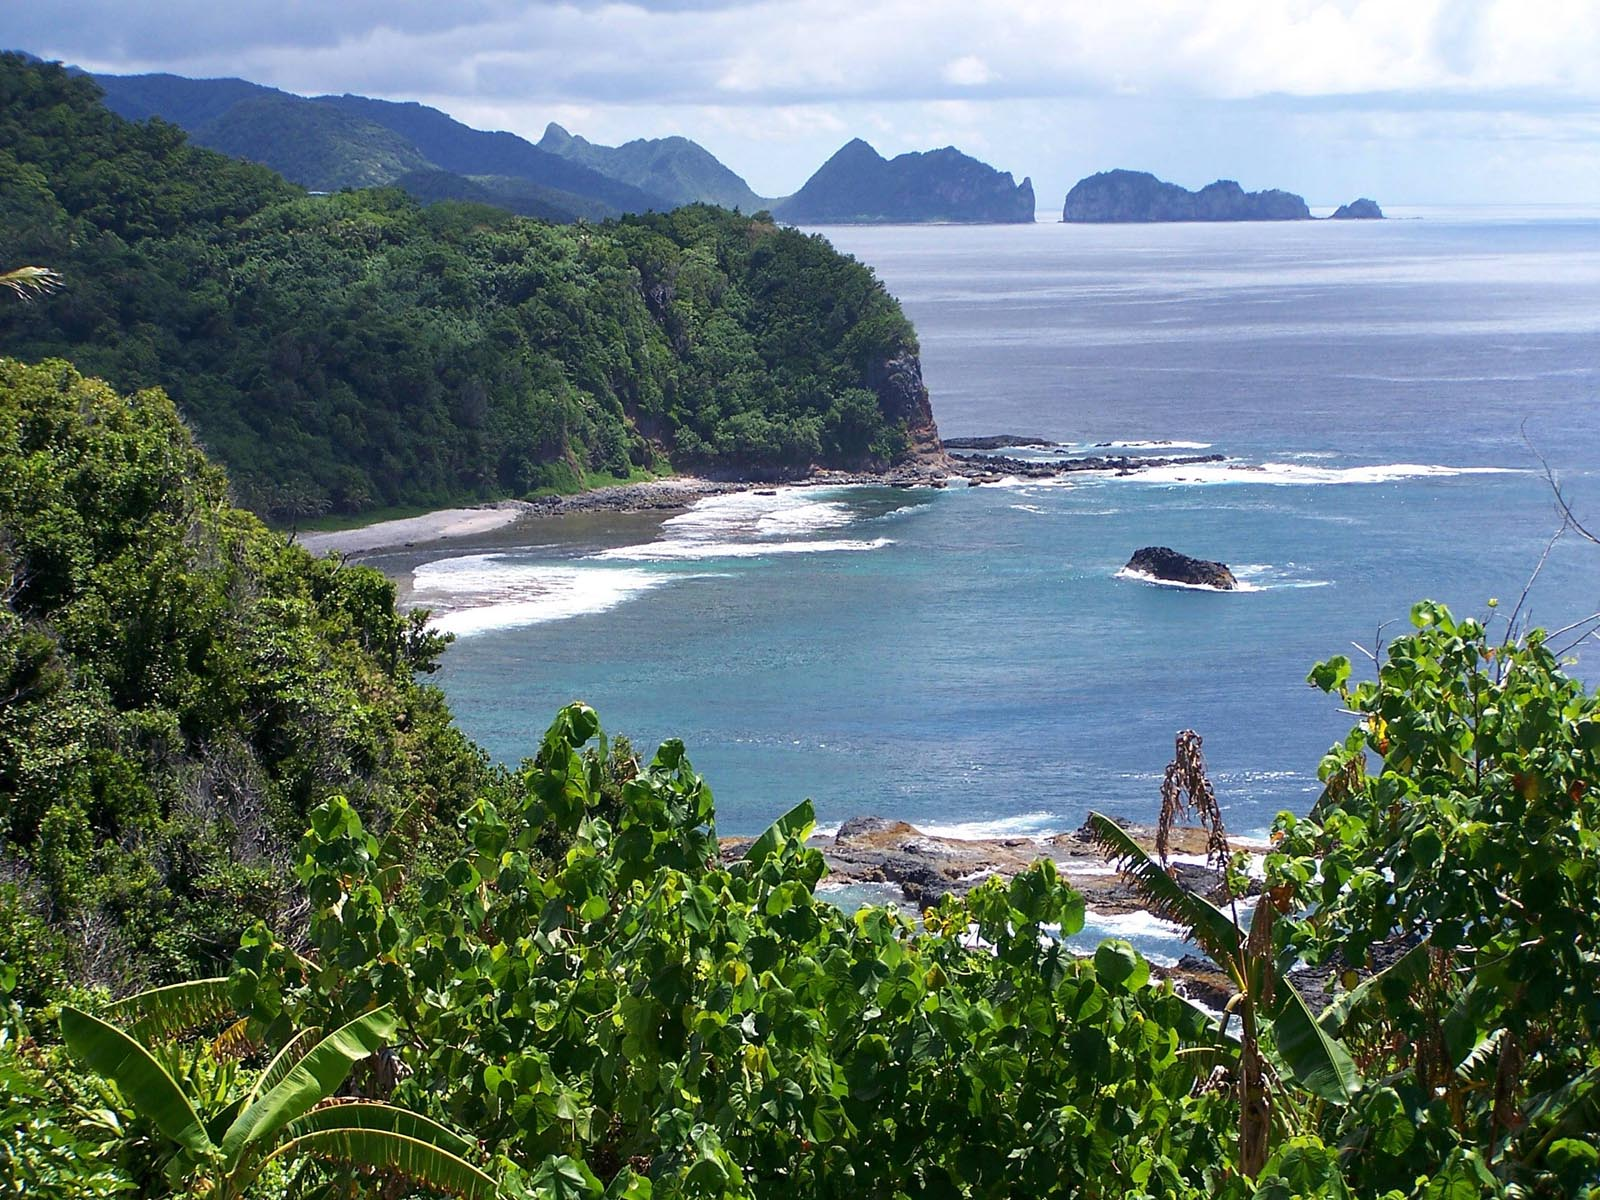 Tutuila Coastline, National Park of American Samoa | Photo Credit: NPS